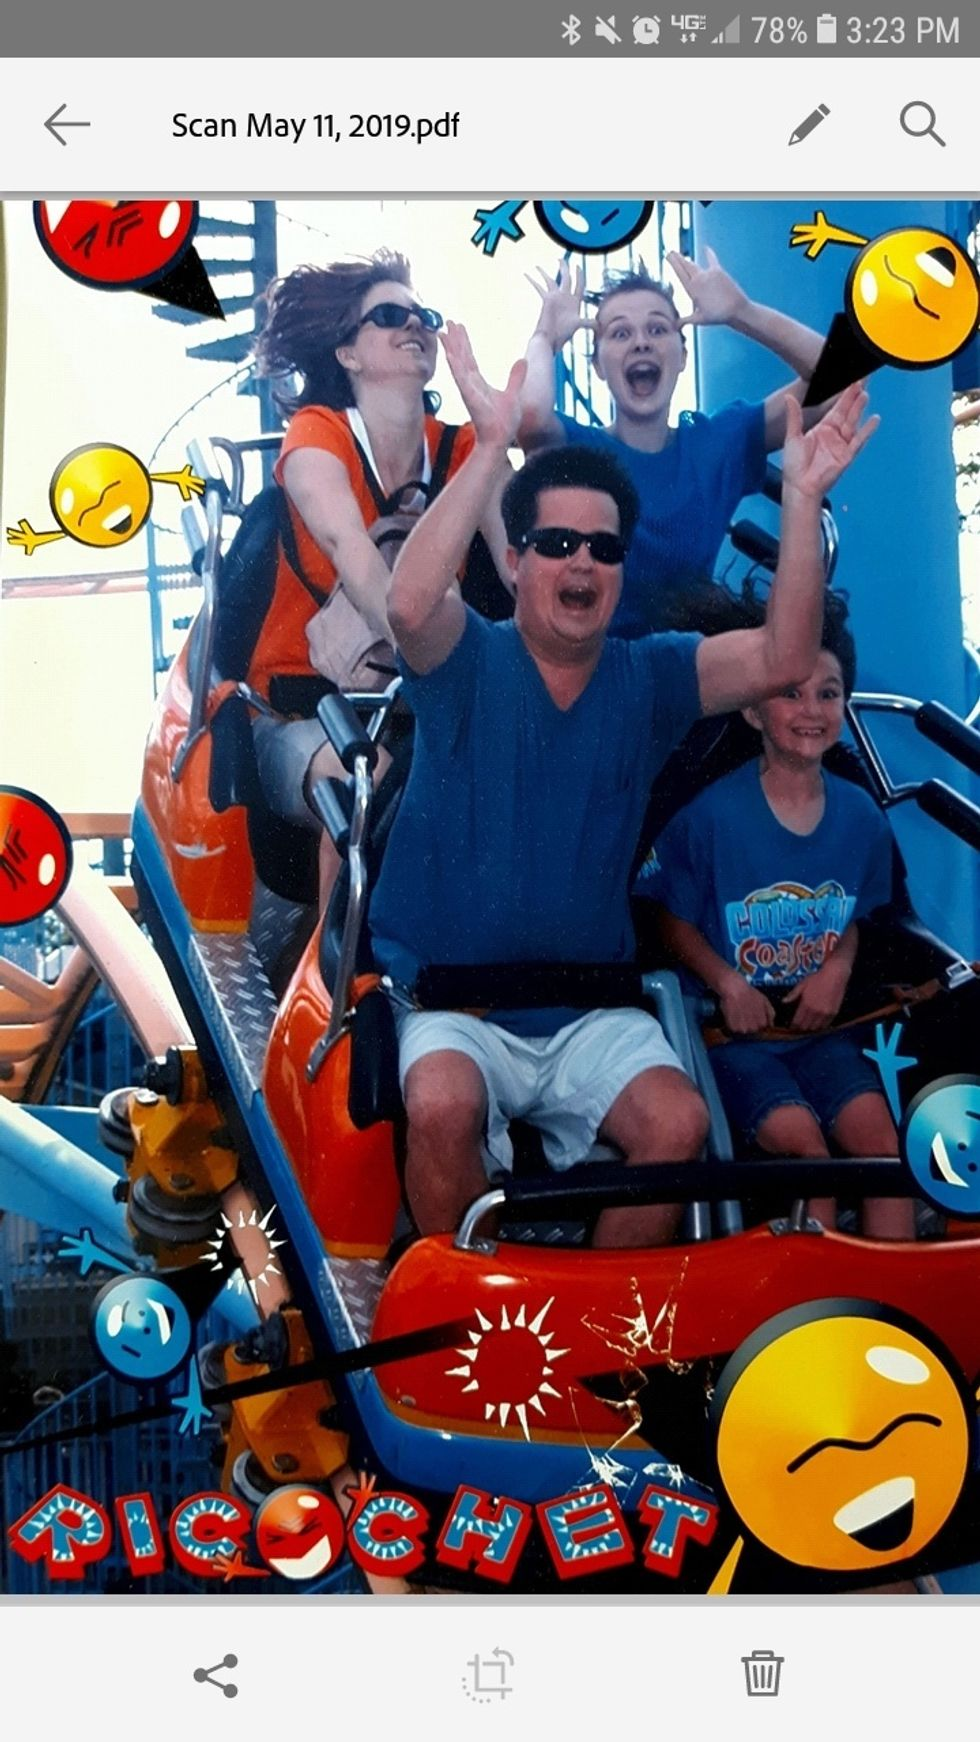 It's All Downhill When You Grow Up In A 'Coaster Family'